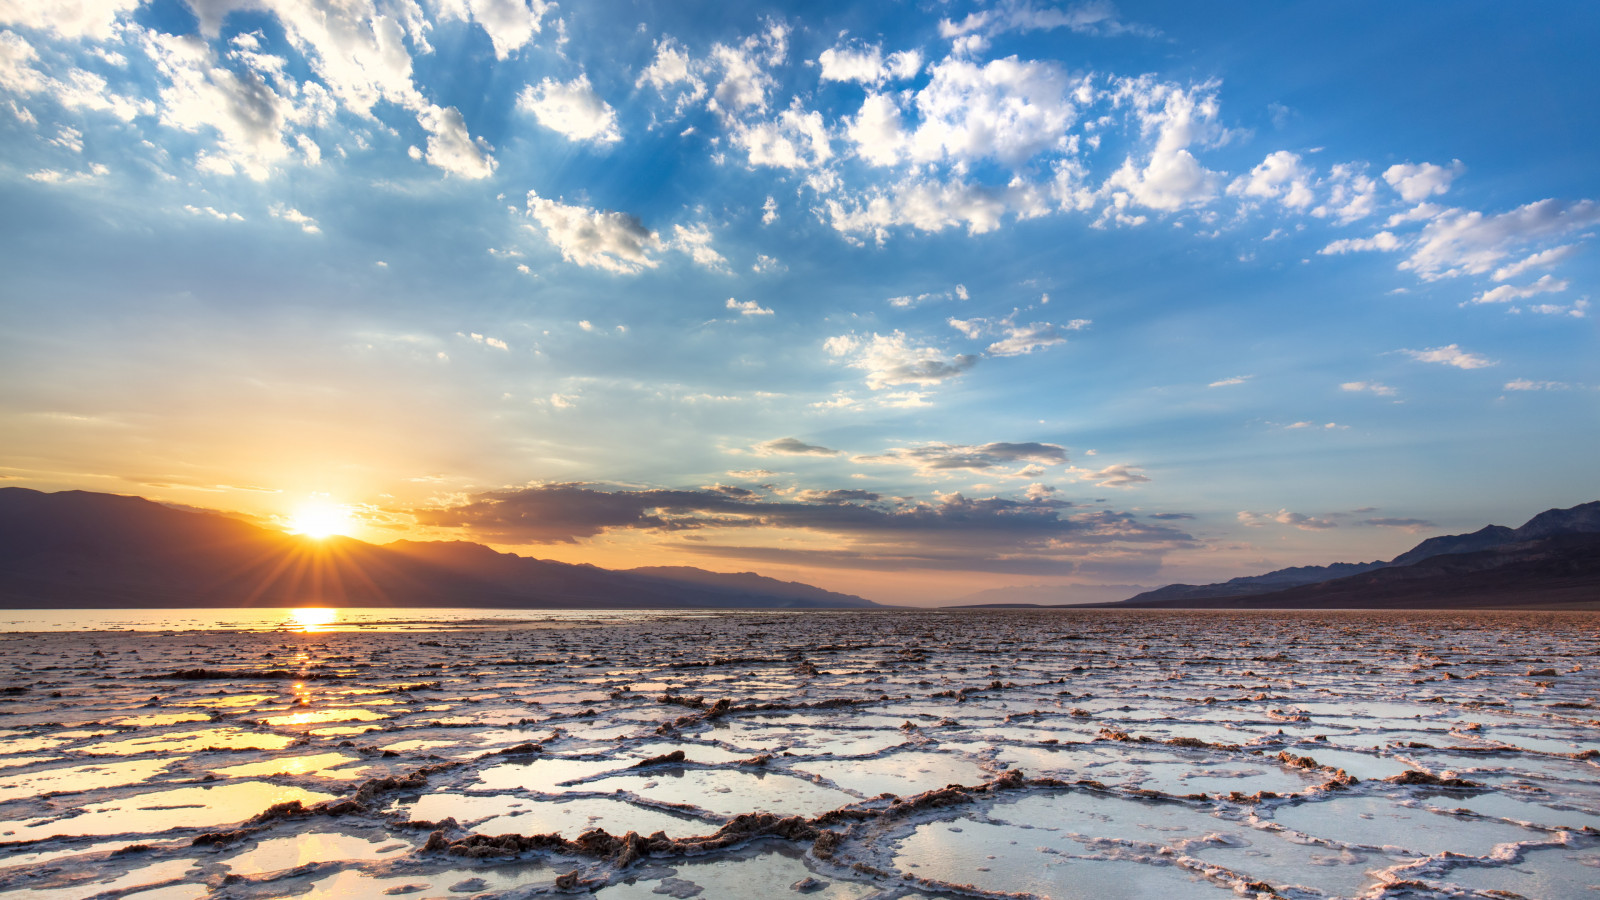 Salt Lakes wallpaper 1600x900